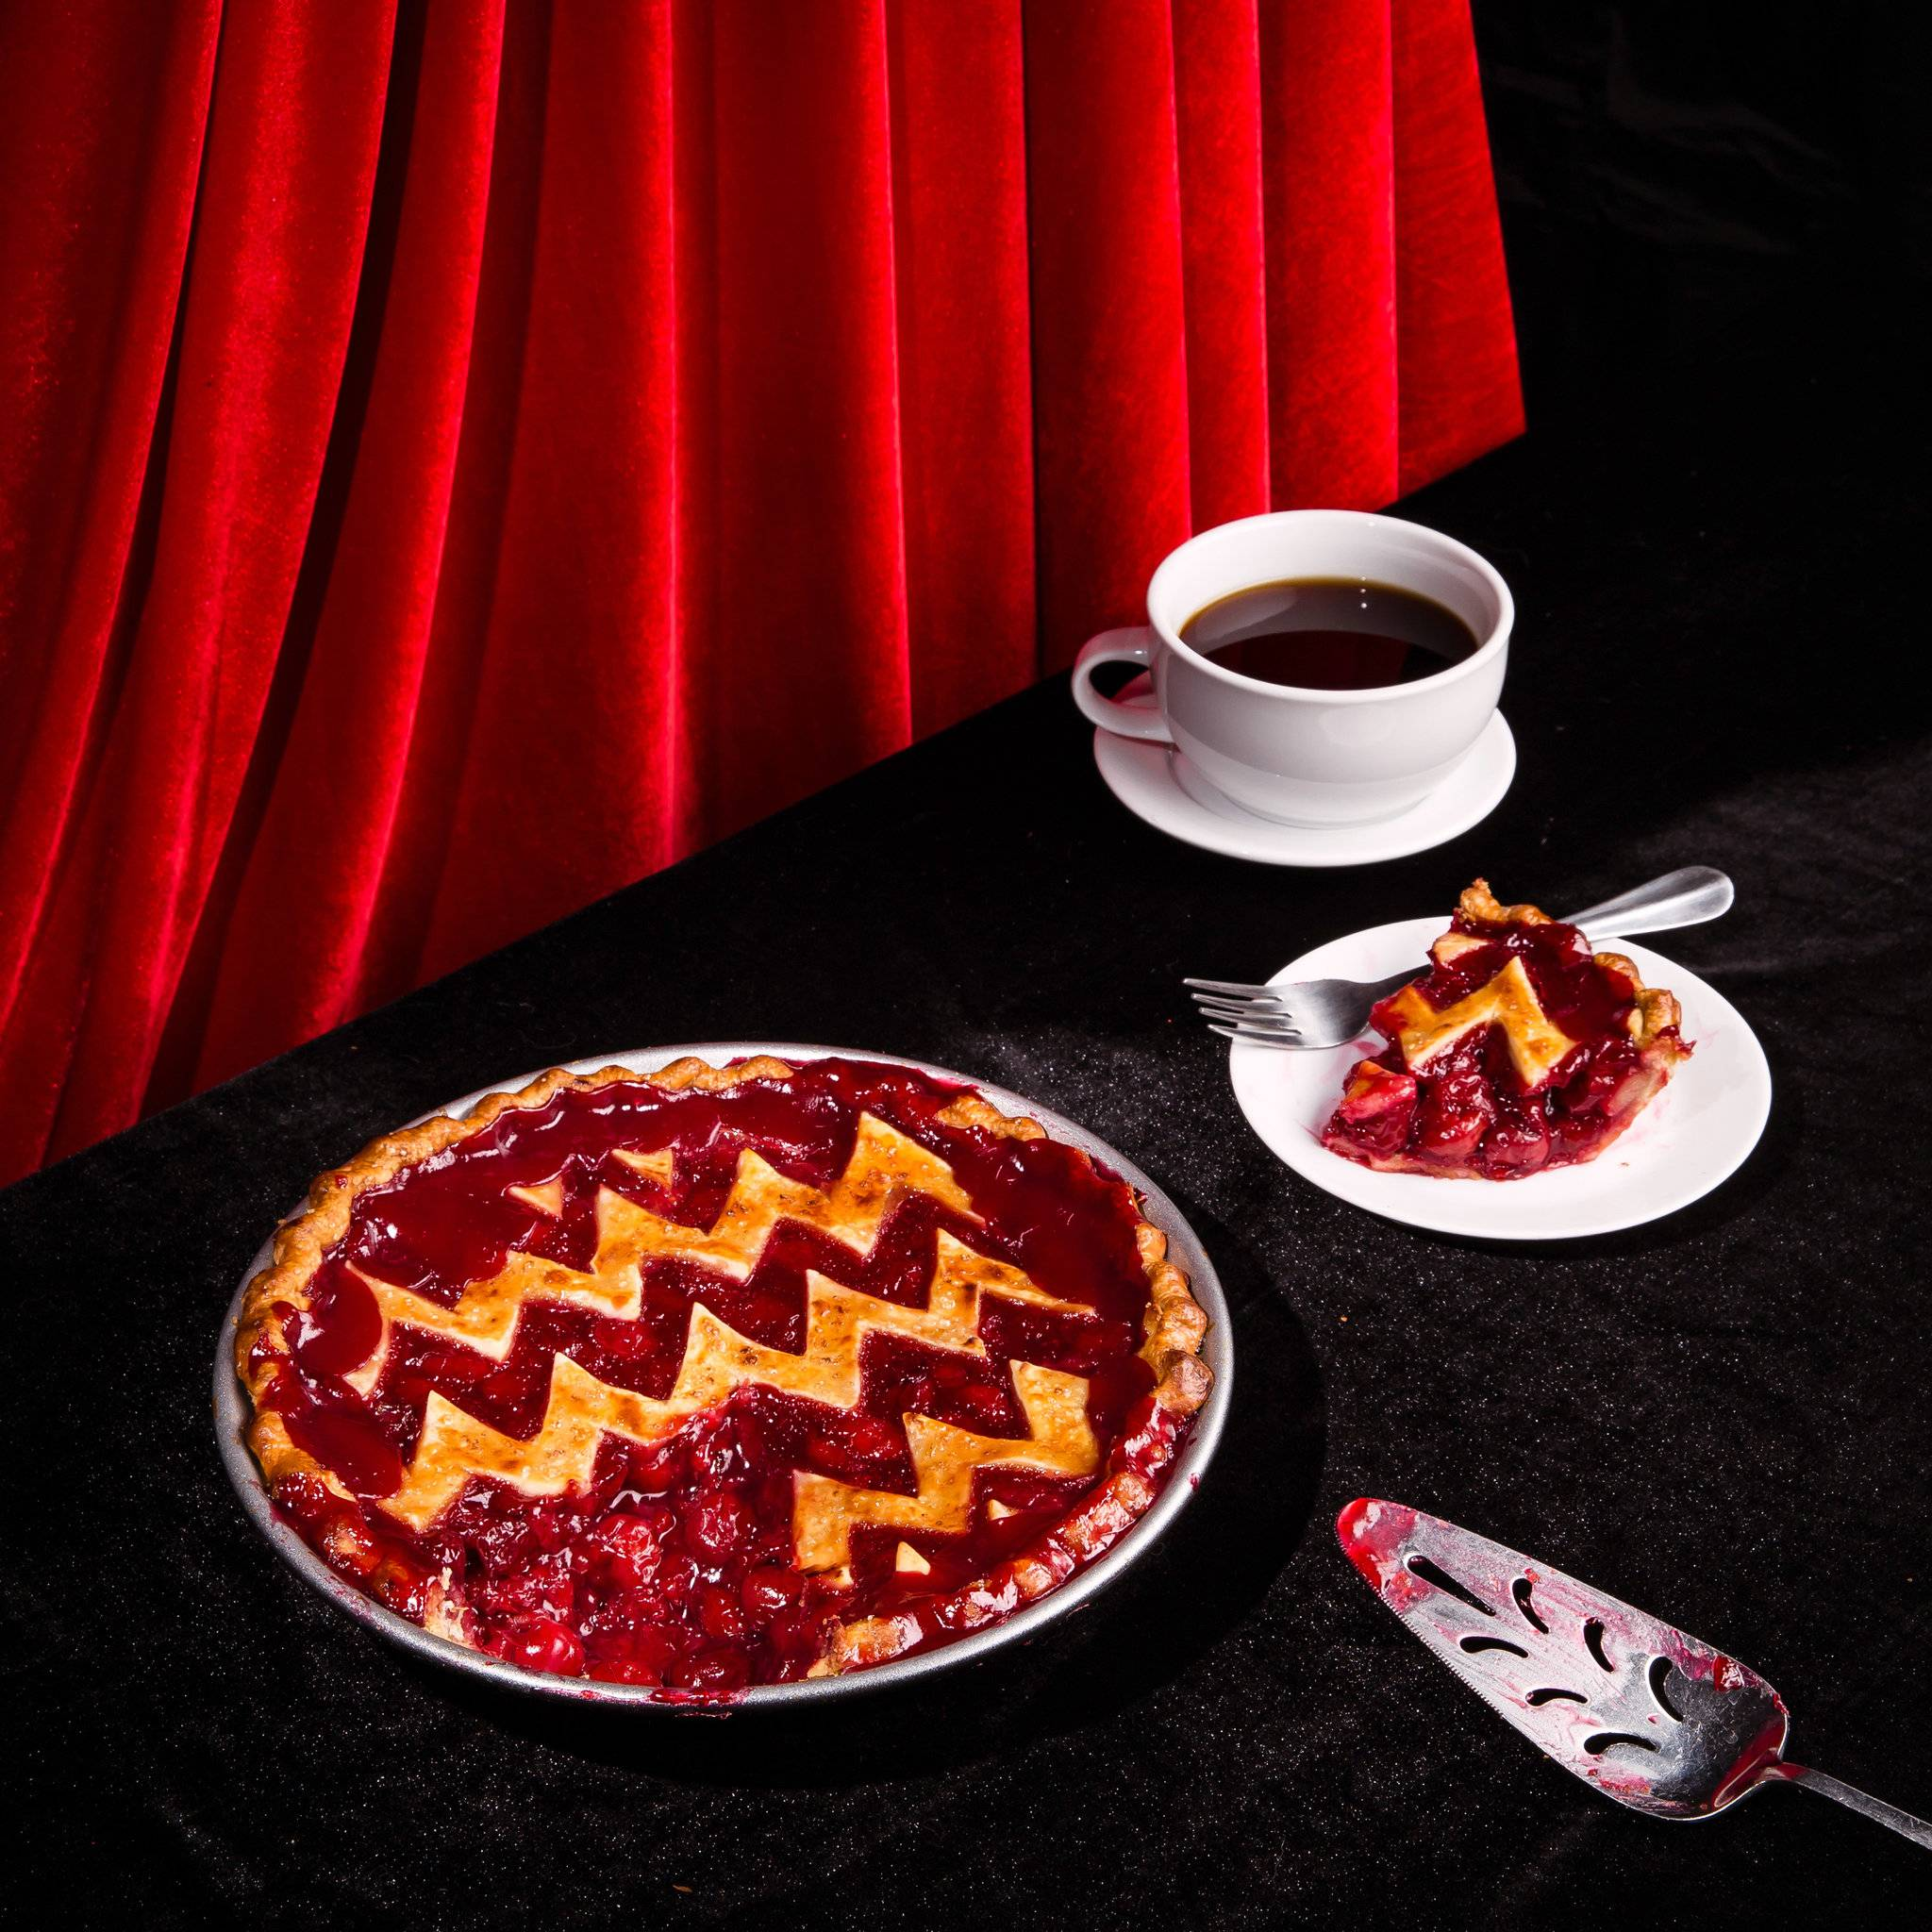 twin-peaks-lauthentique-recette-de-la-cherry-pie